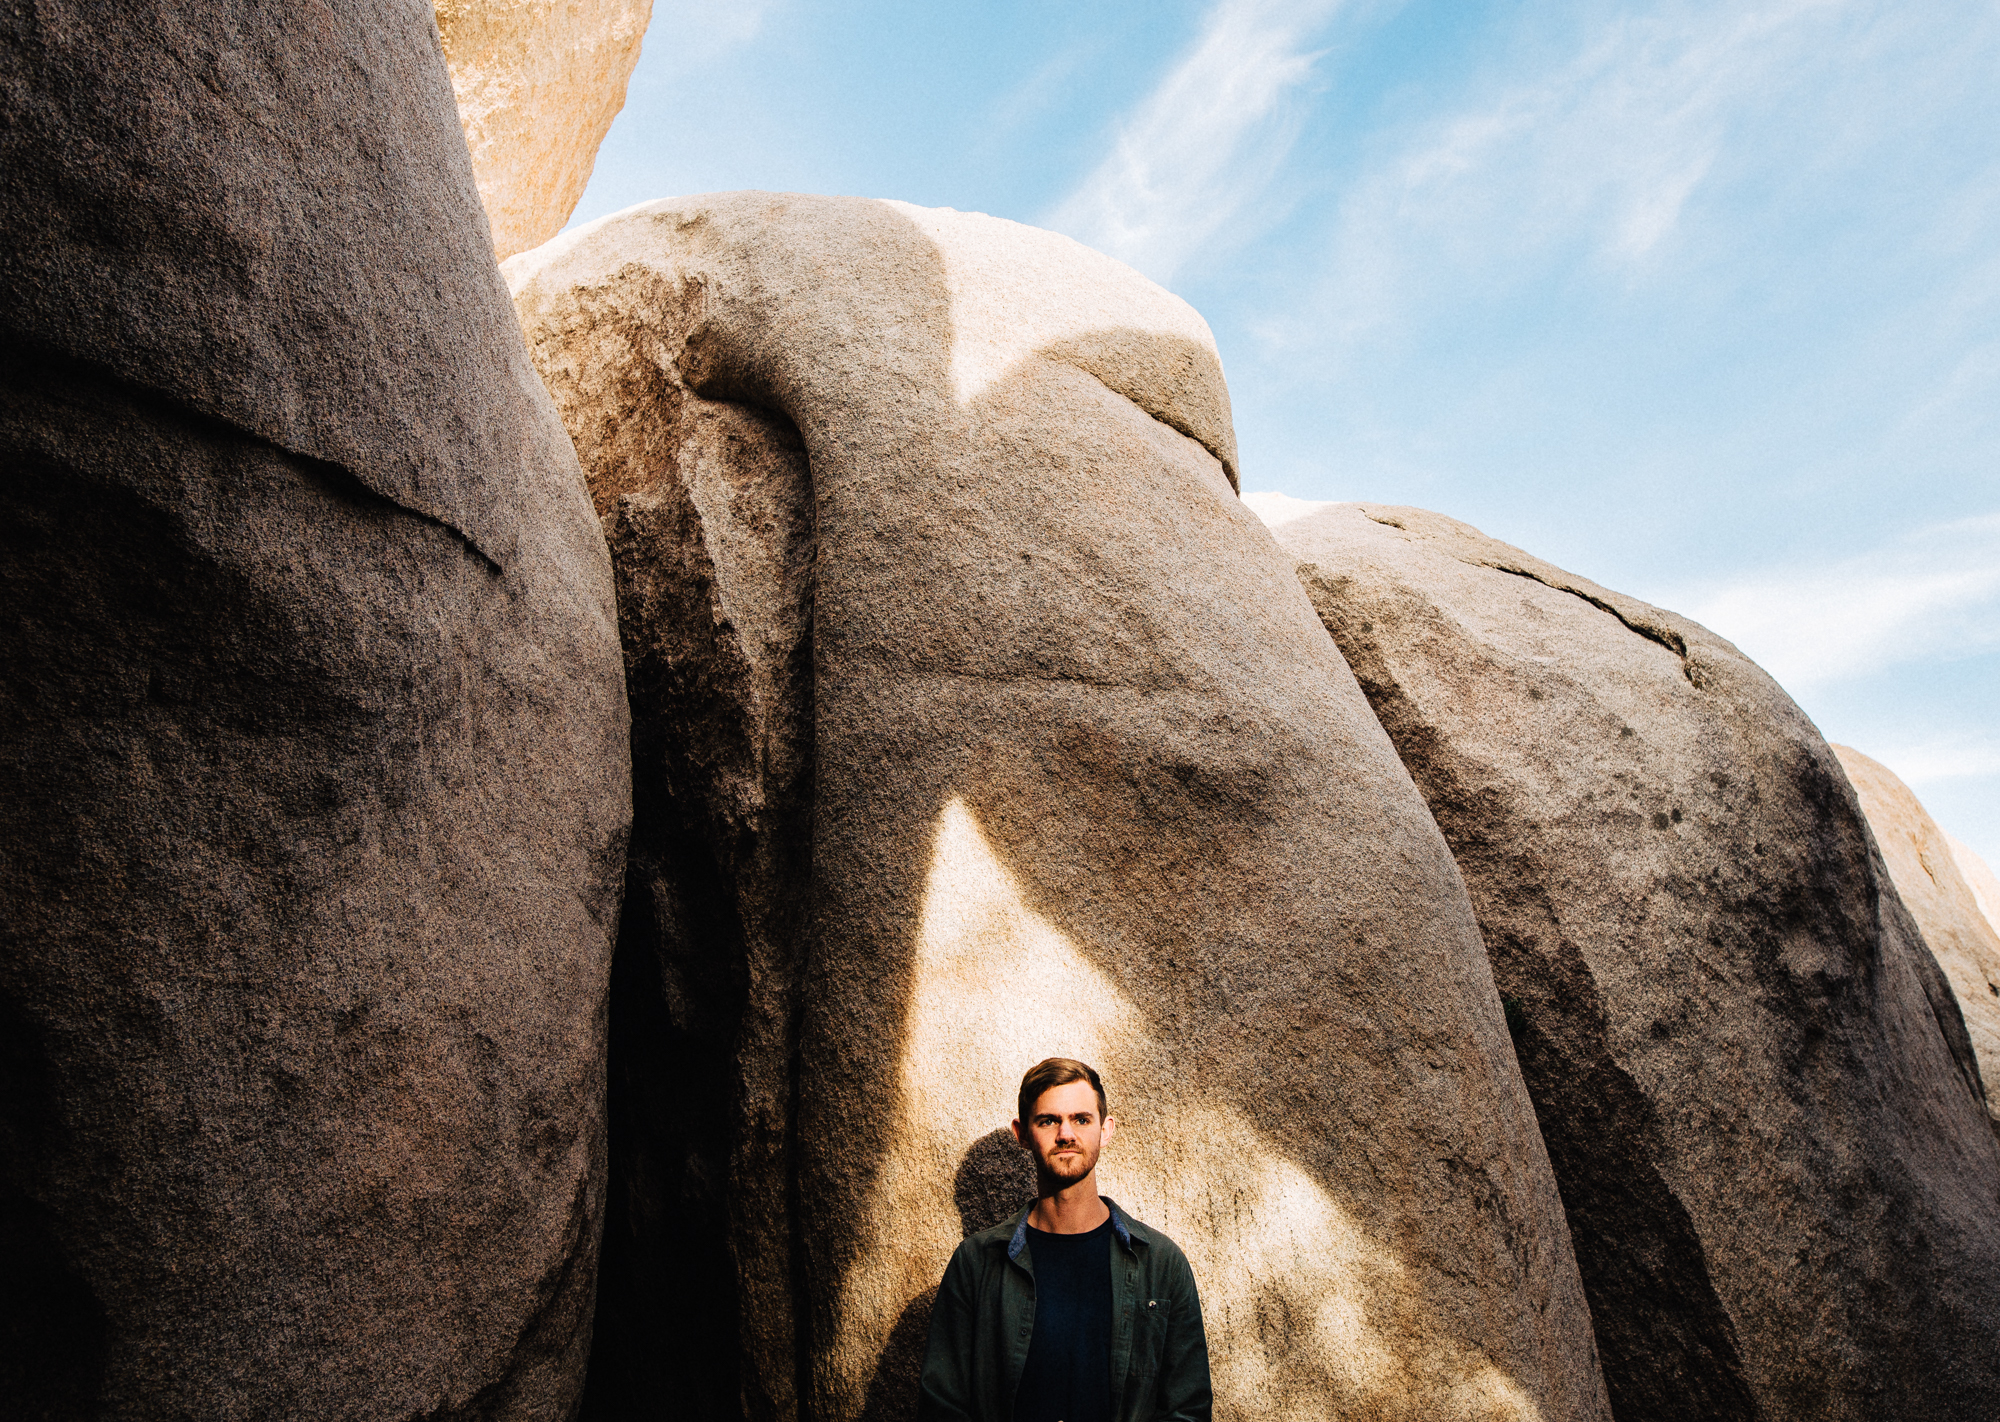 ©Isaiah & Taylor Photography - Destination Wedding Photographers - Joshua Tree, California Adventure Engagement-002.jpg